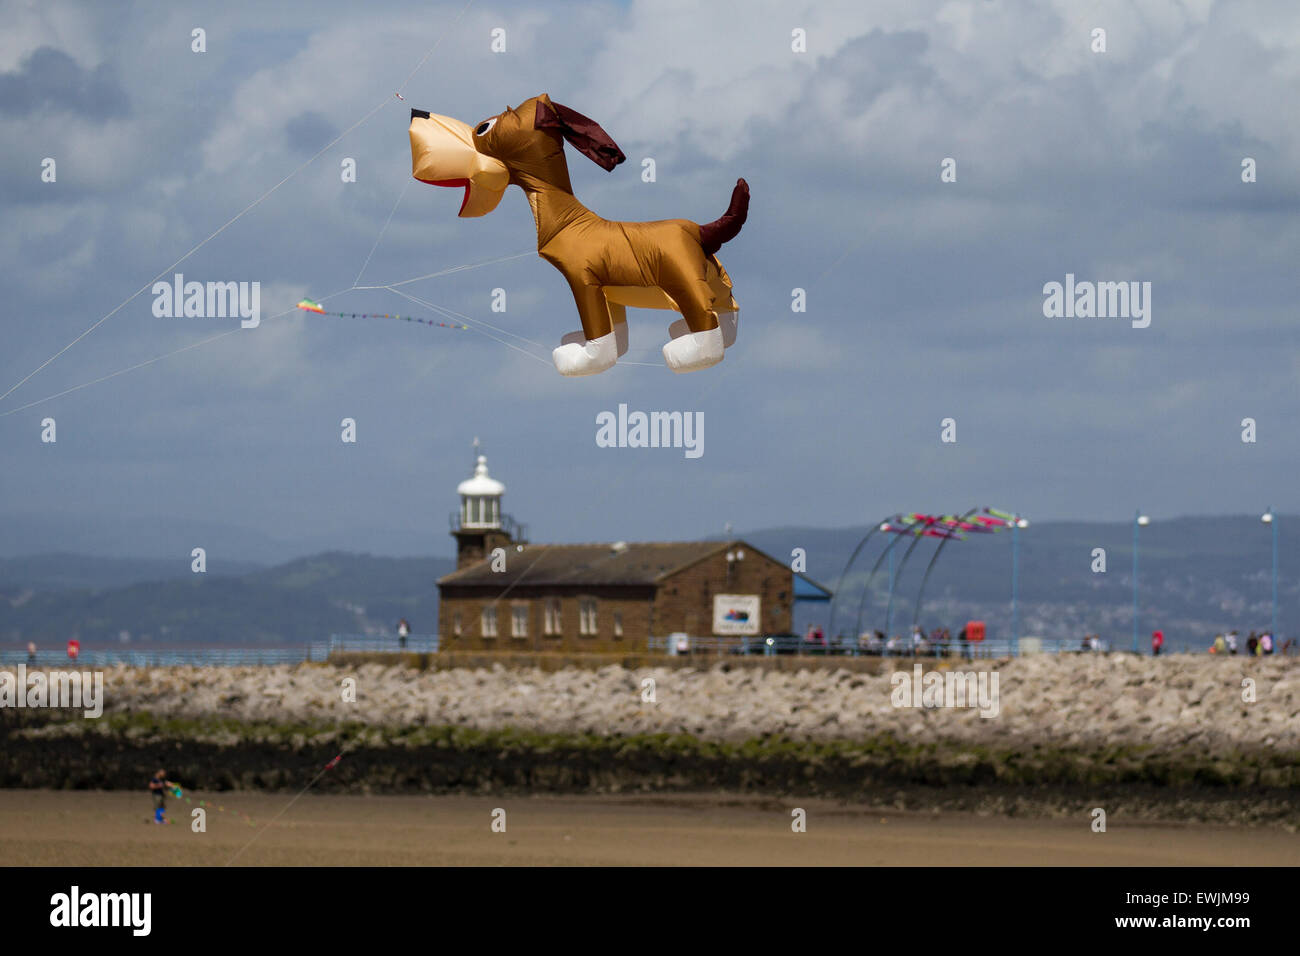 Morecambe, Lancashire, UK 27th June, 2015. Inflatable comical cartoon dog flying over the Stone Jetty Light house. Catch The Wind Kite Festival an annual festival on Morecambe seafront, when for the whole day the skies are full of the most spectacular shapes, colours and flying creations.  Featured were animal kites of all kinds and sizes. Stock Photo